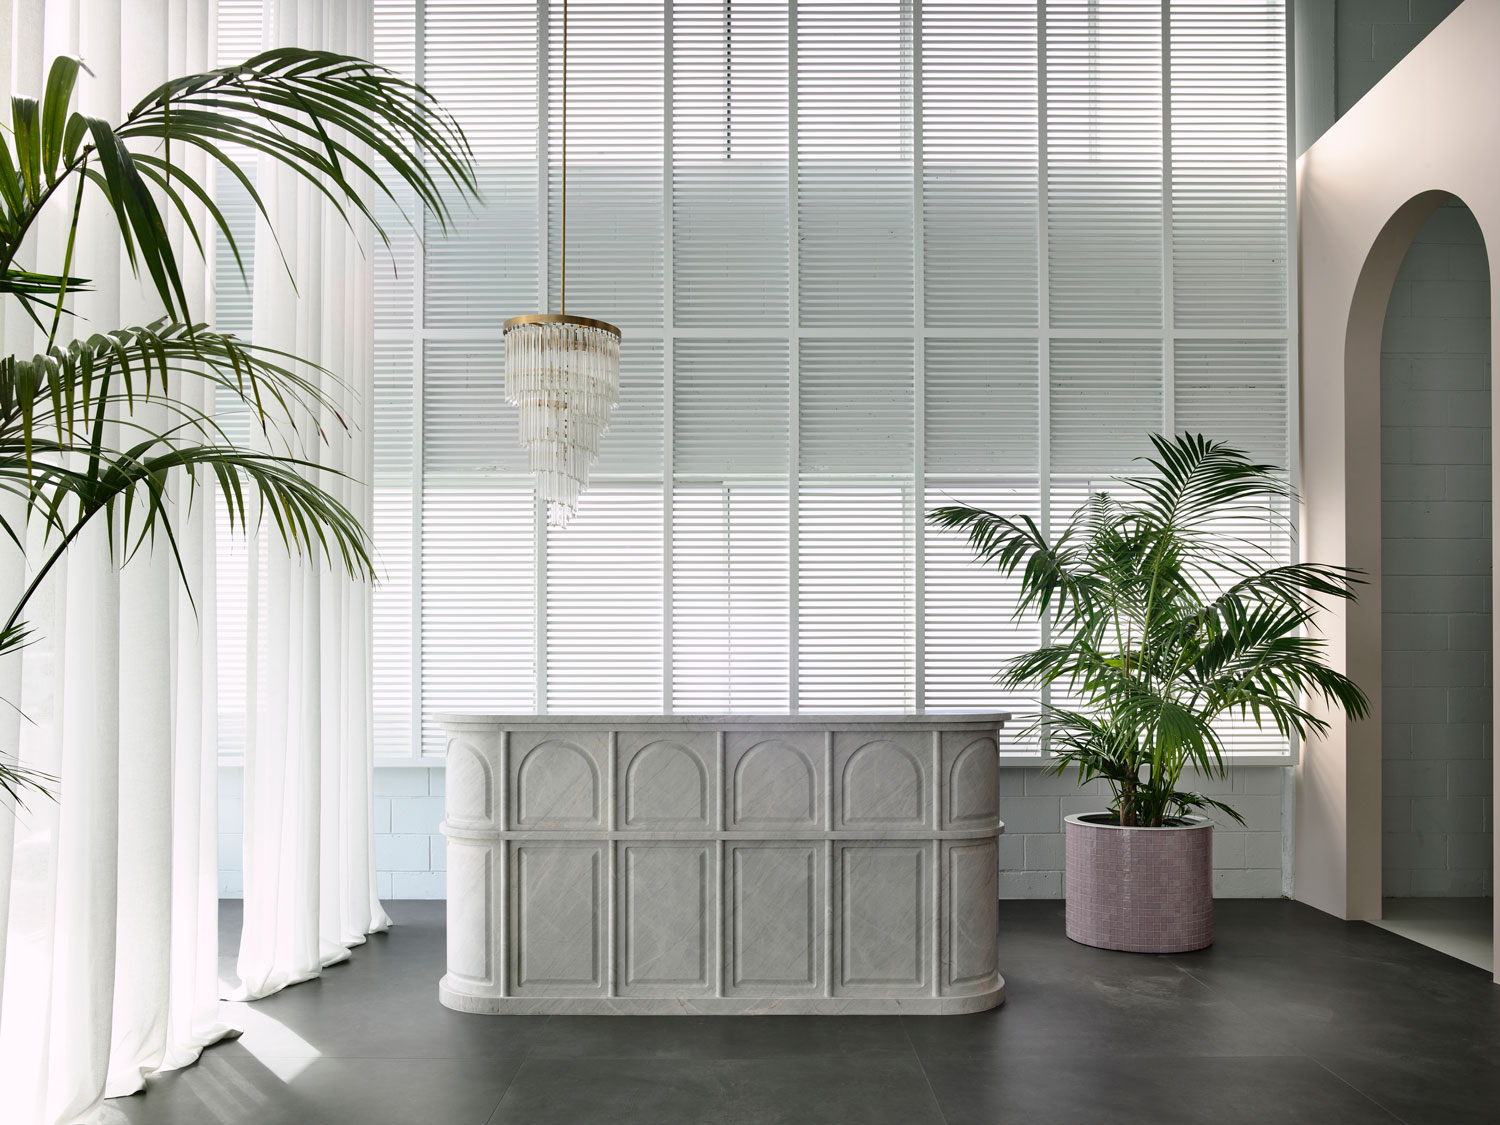 Artedomus Brisbane Showroom by The Stella Collective & Thomas Coward.